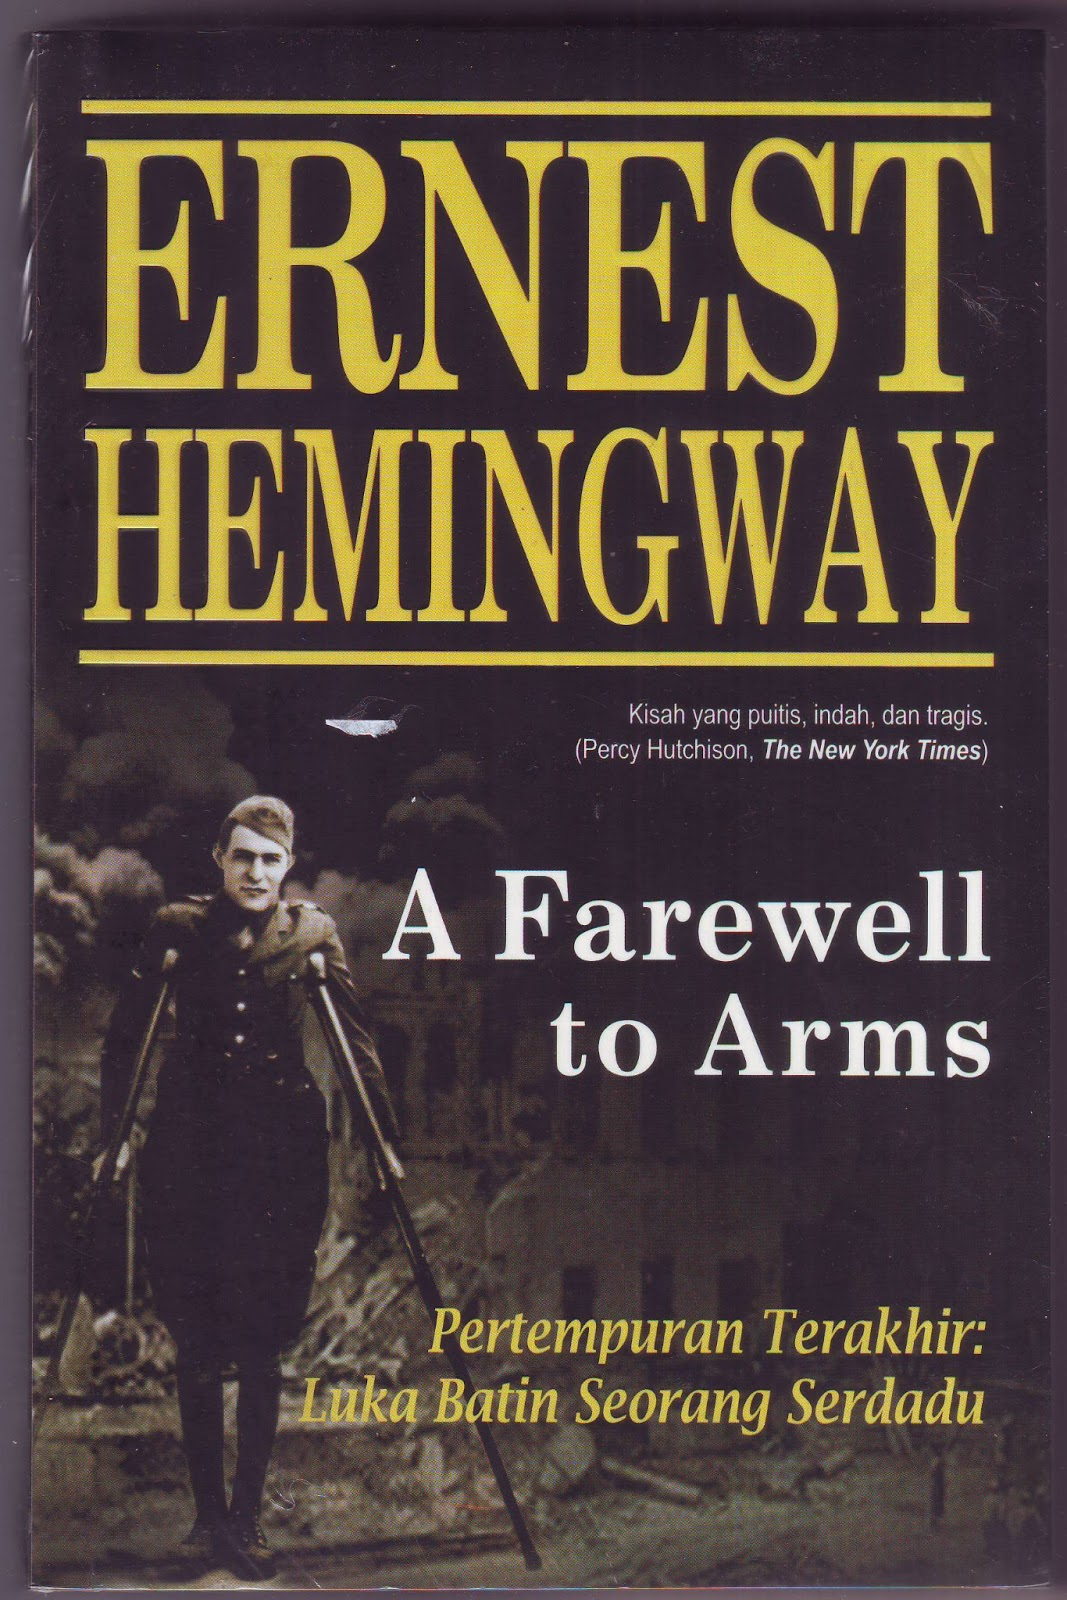 farewell to arms essay ernest hemingway a farewell to arms quotes  essay topics a farewell to arms related post of essay topics a farewell to arms